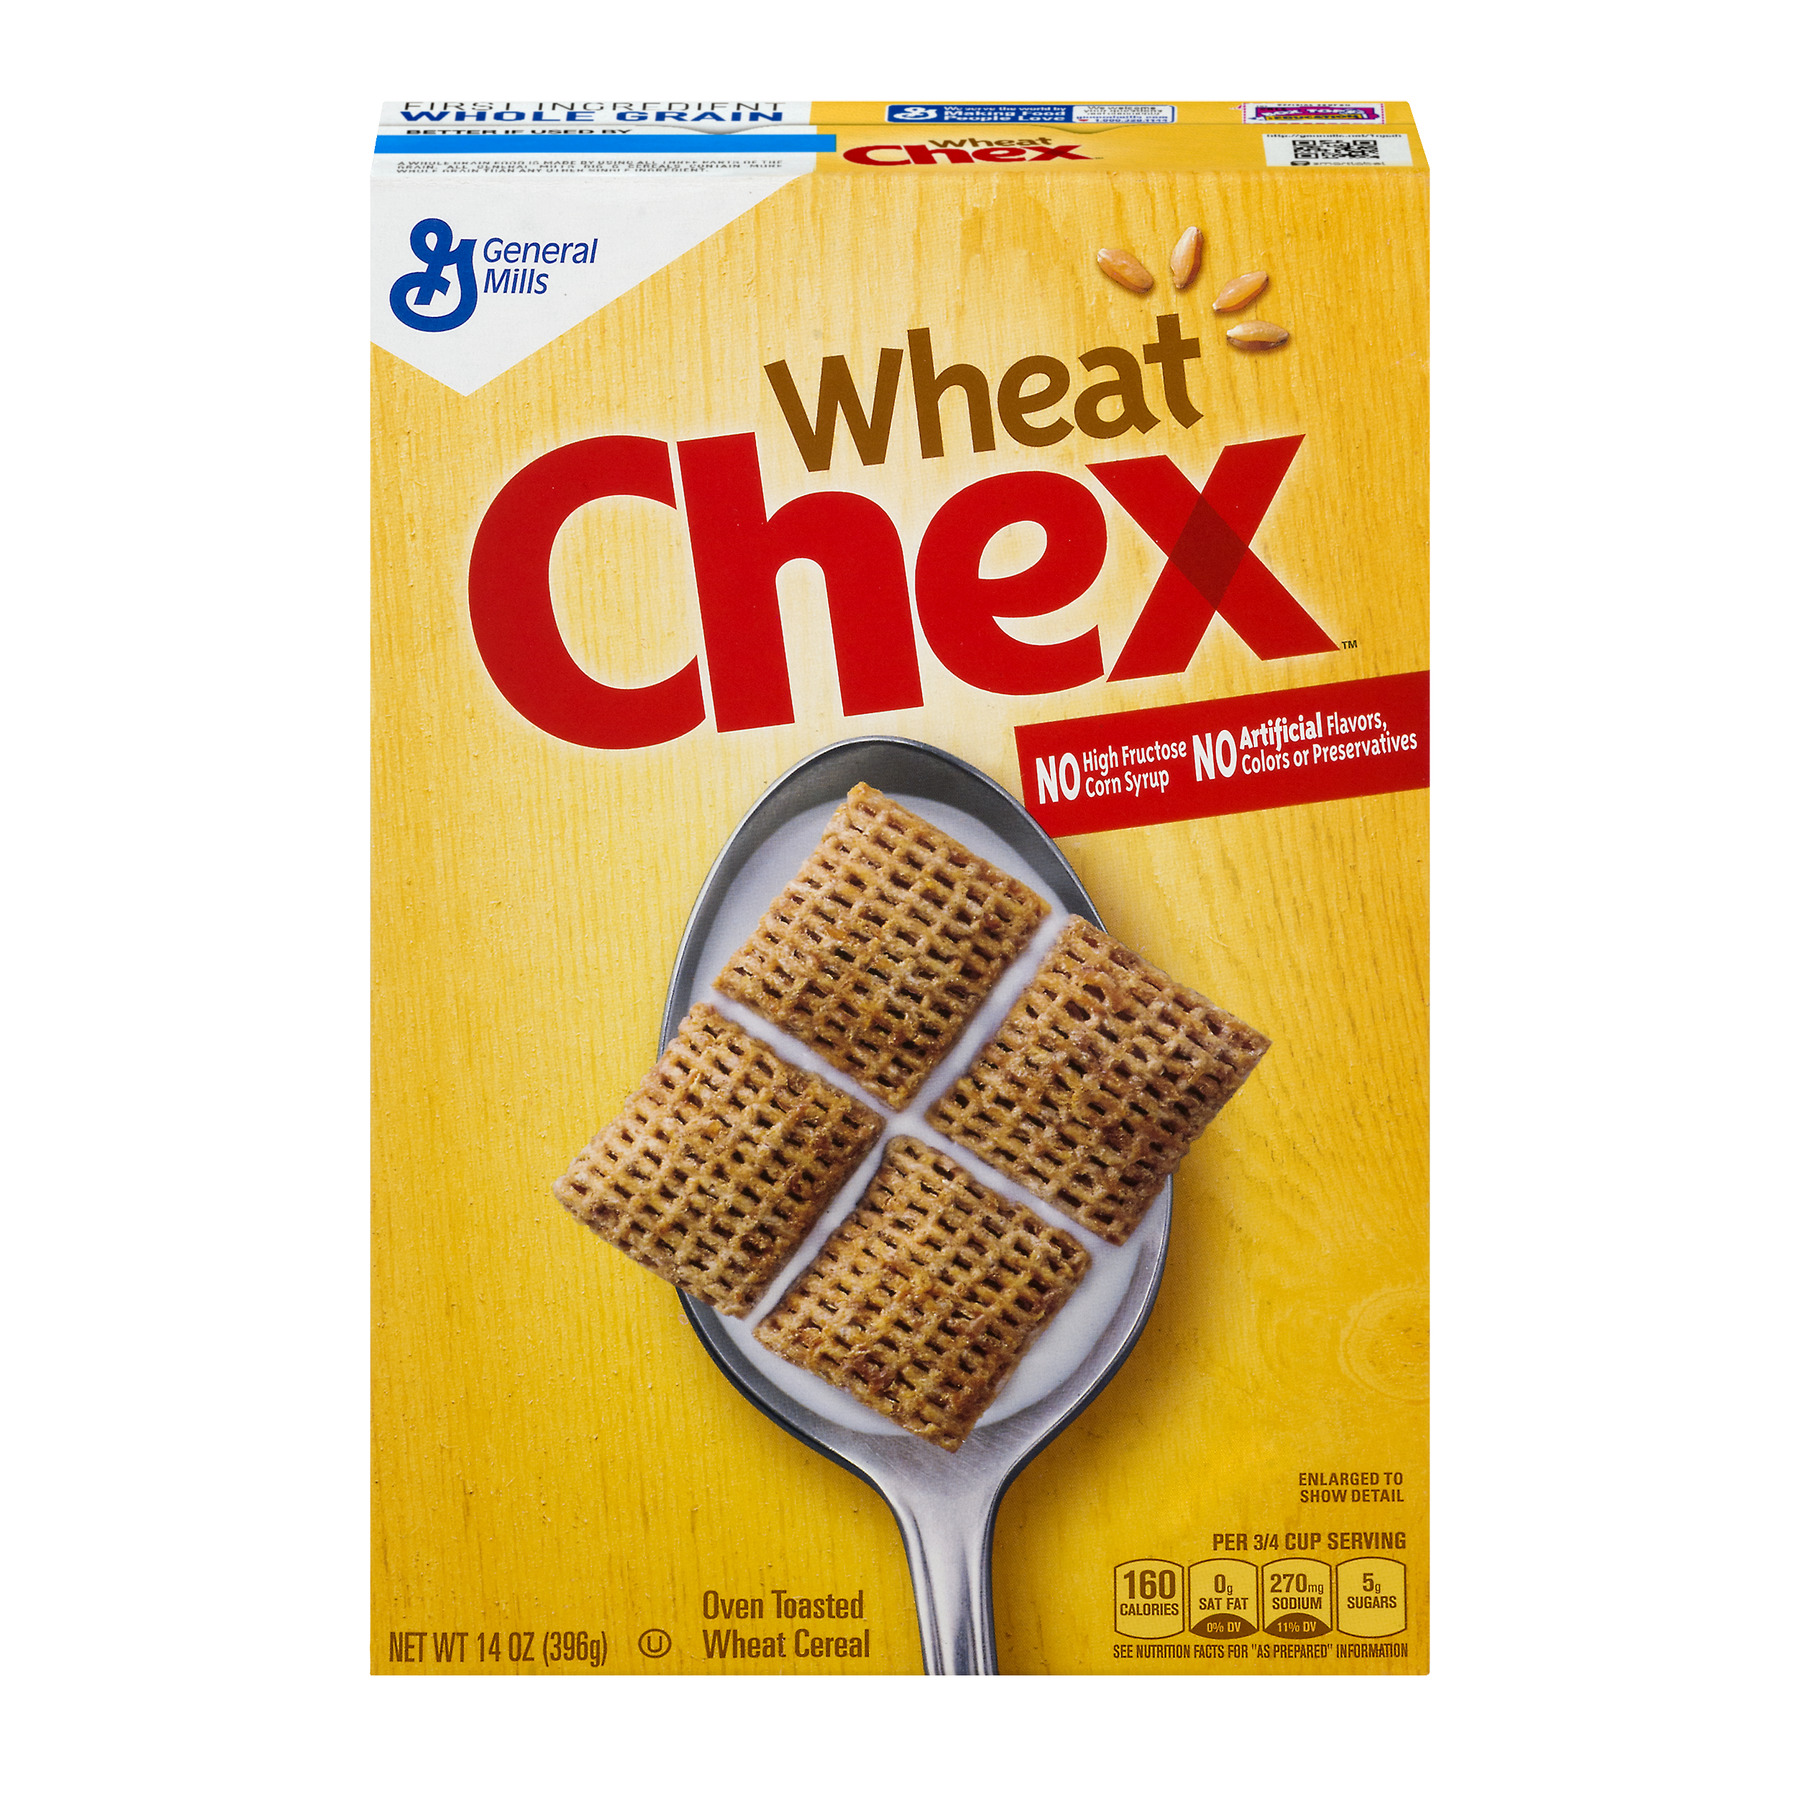 Wheat Chex™ Cereal 14 oz Box